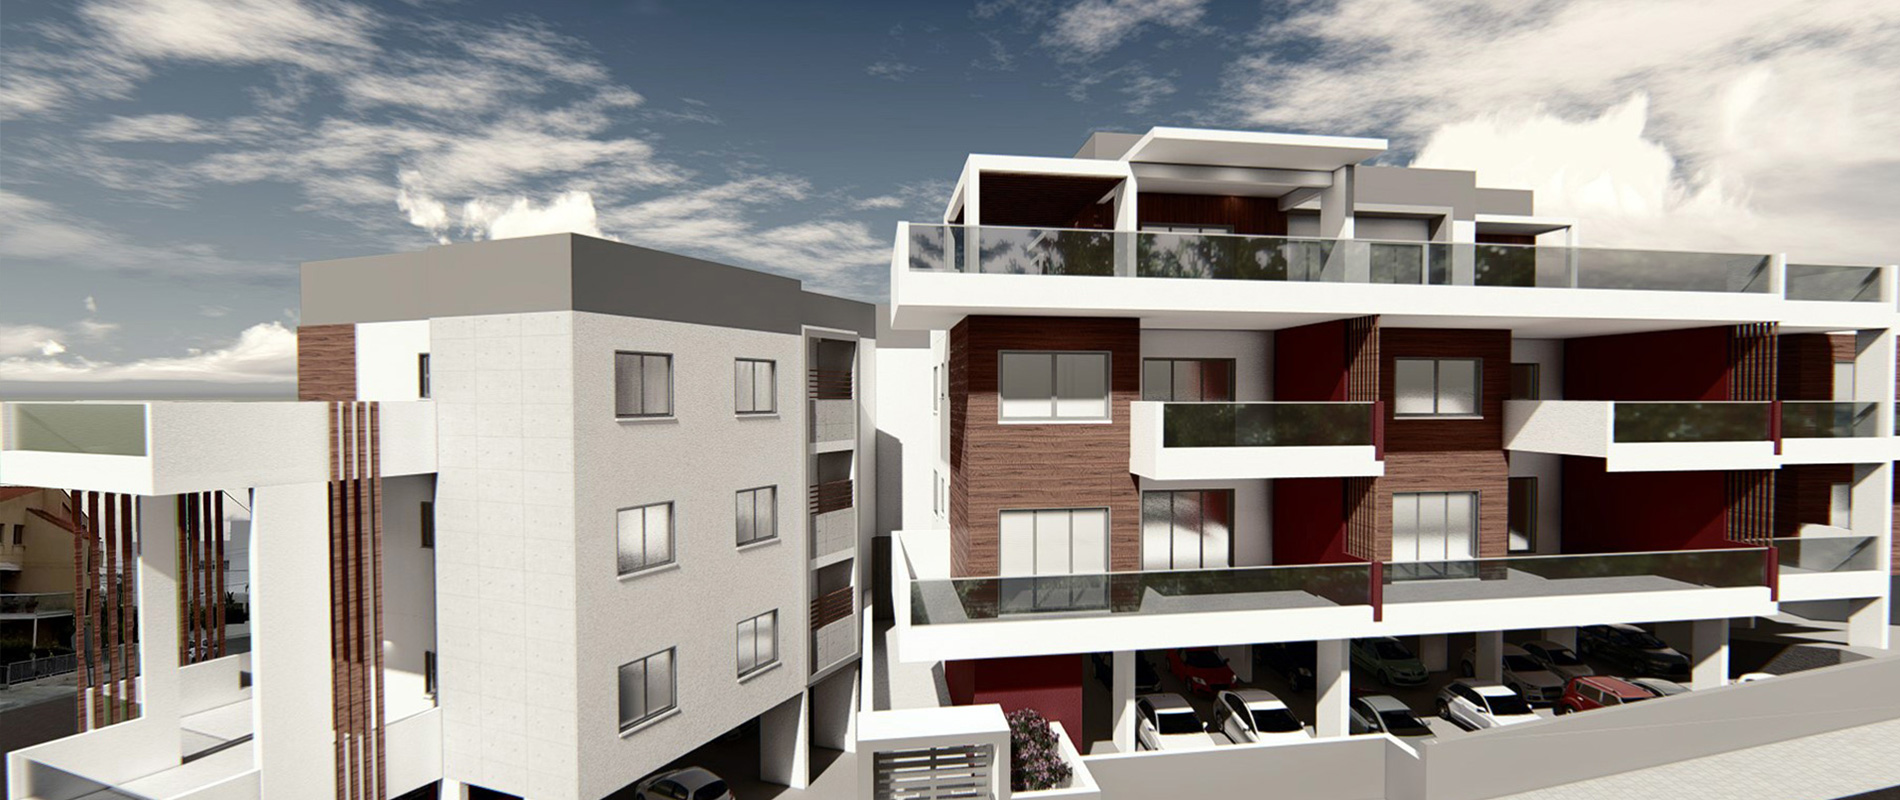 New Project Coming - Sphera Block C & D